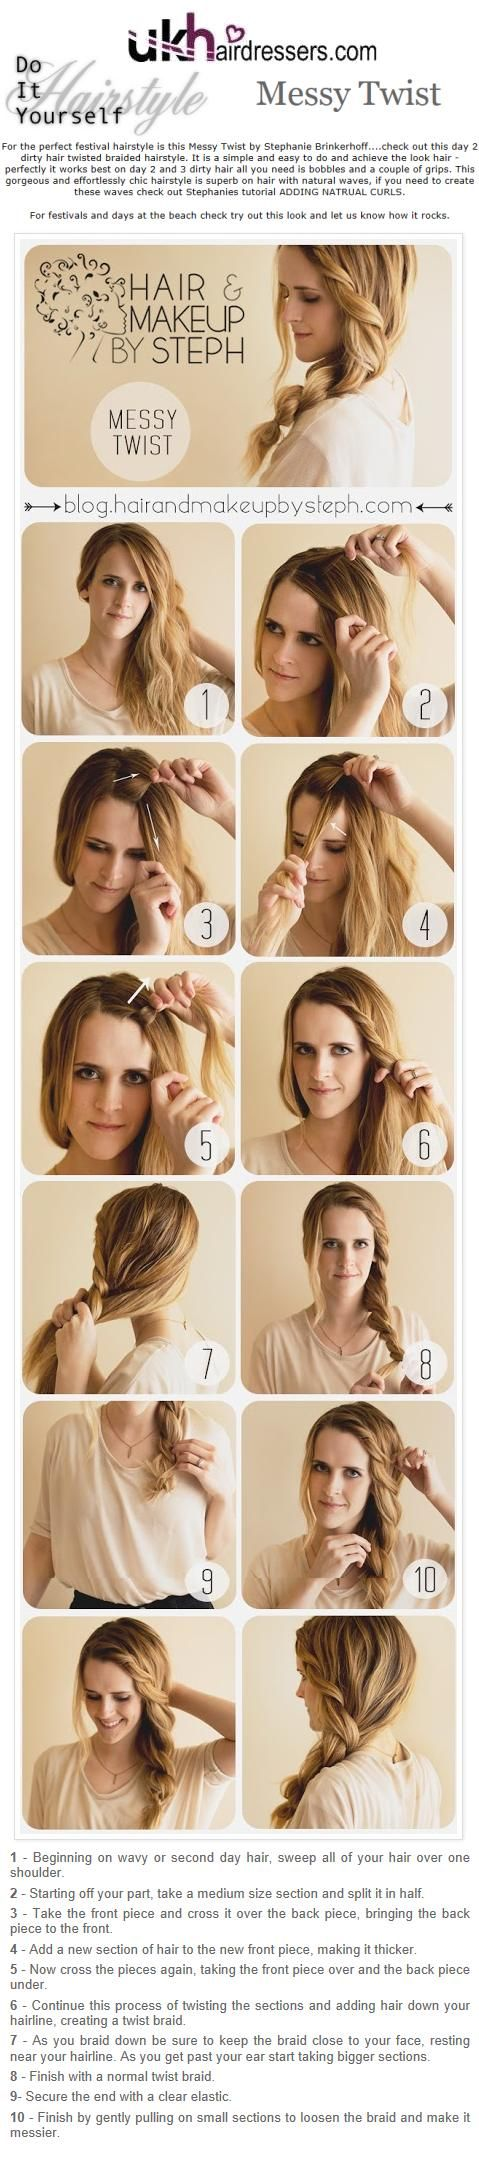 DIY Hairstyles Messy Twist (so easy took me around 1 min!)